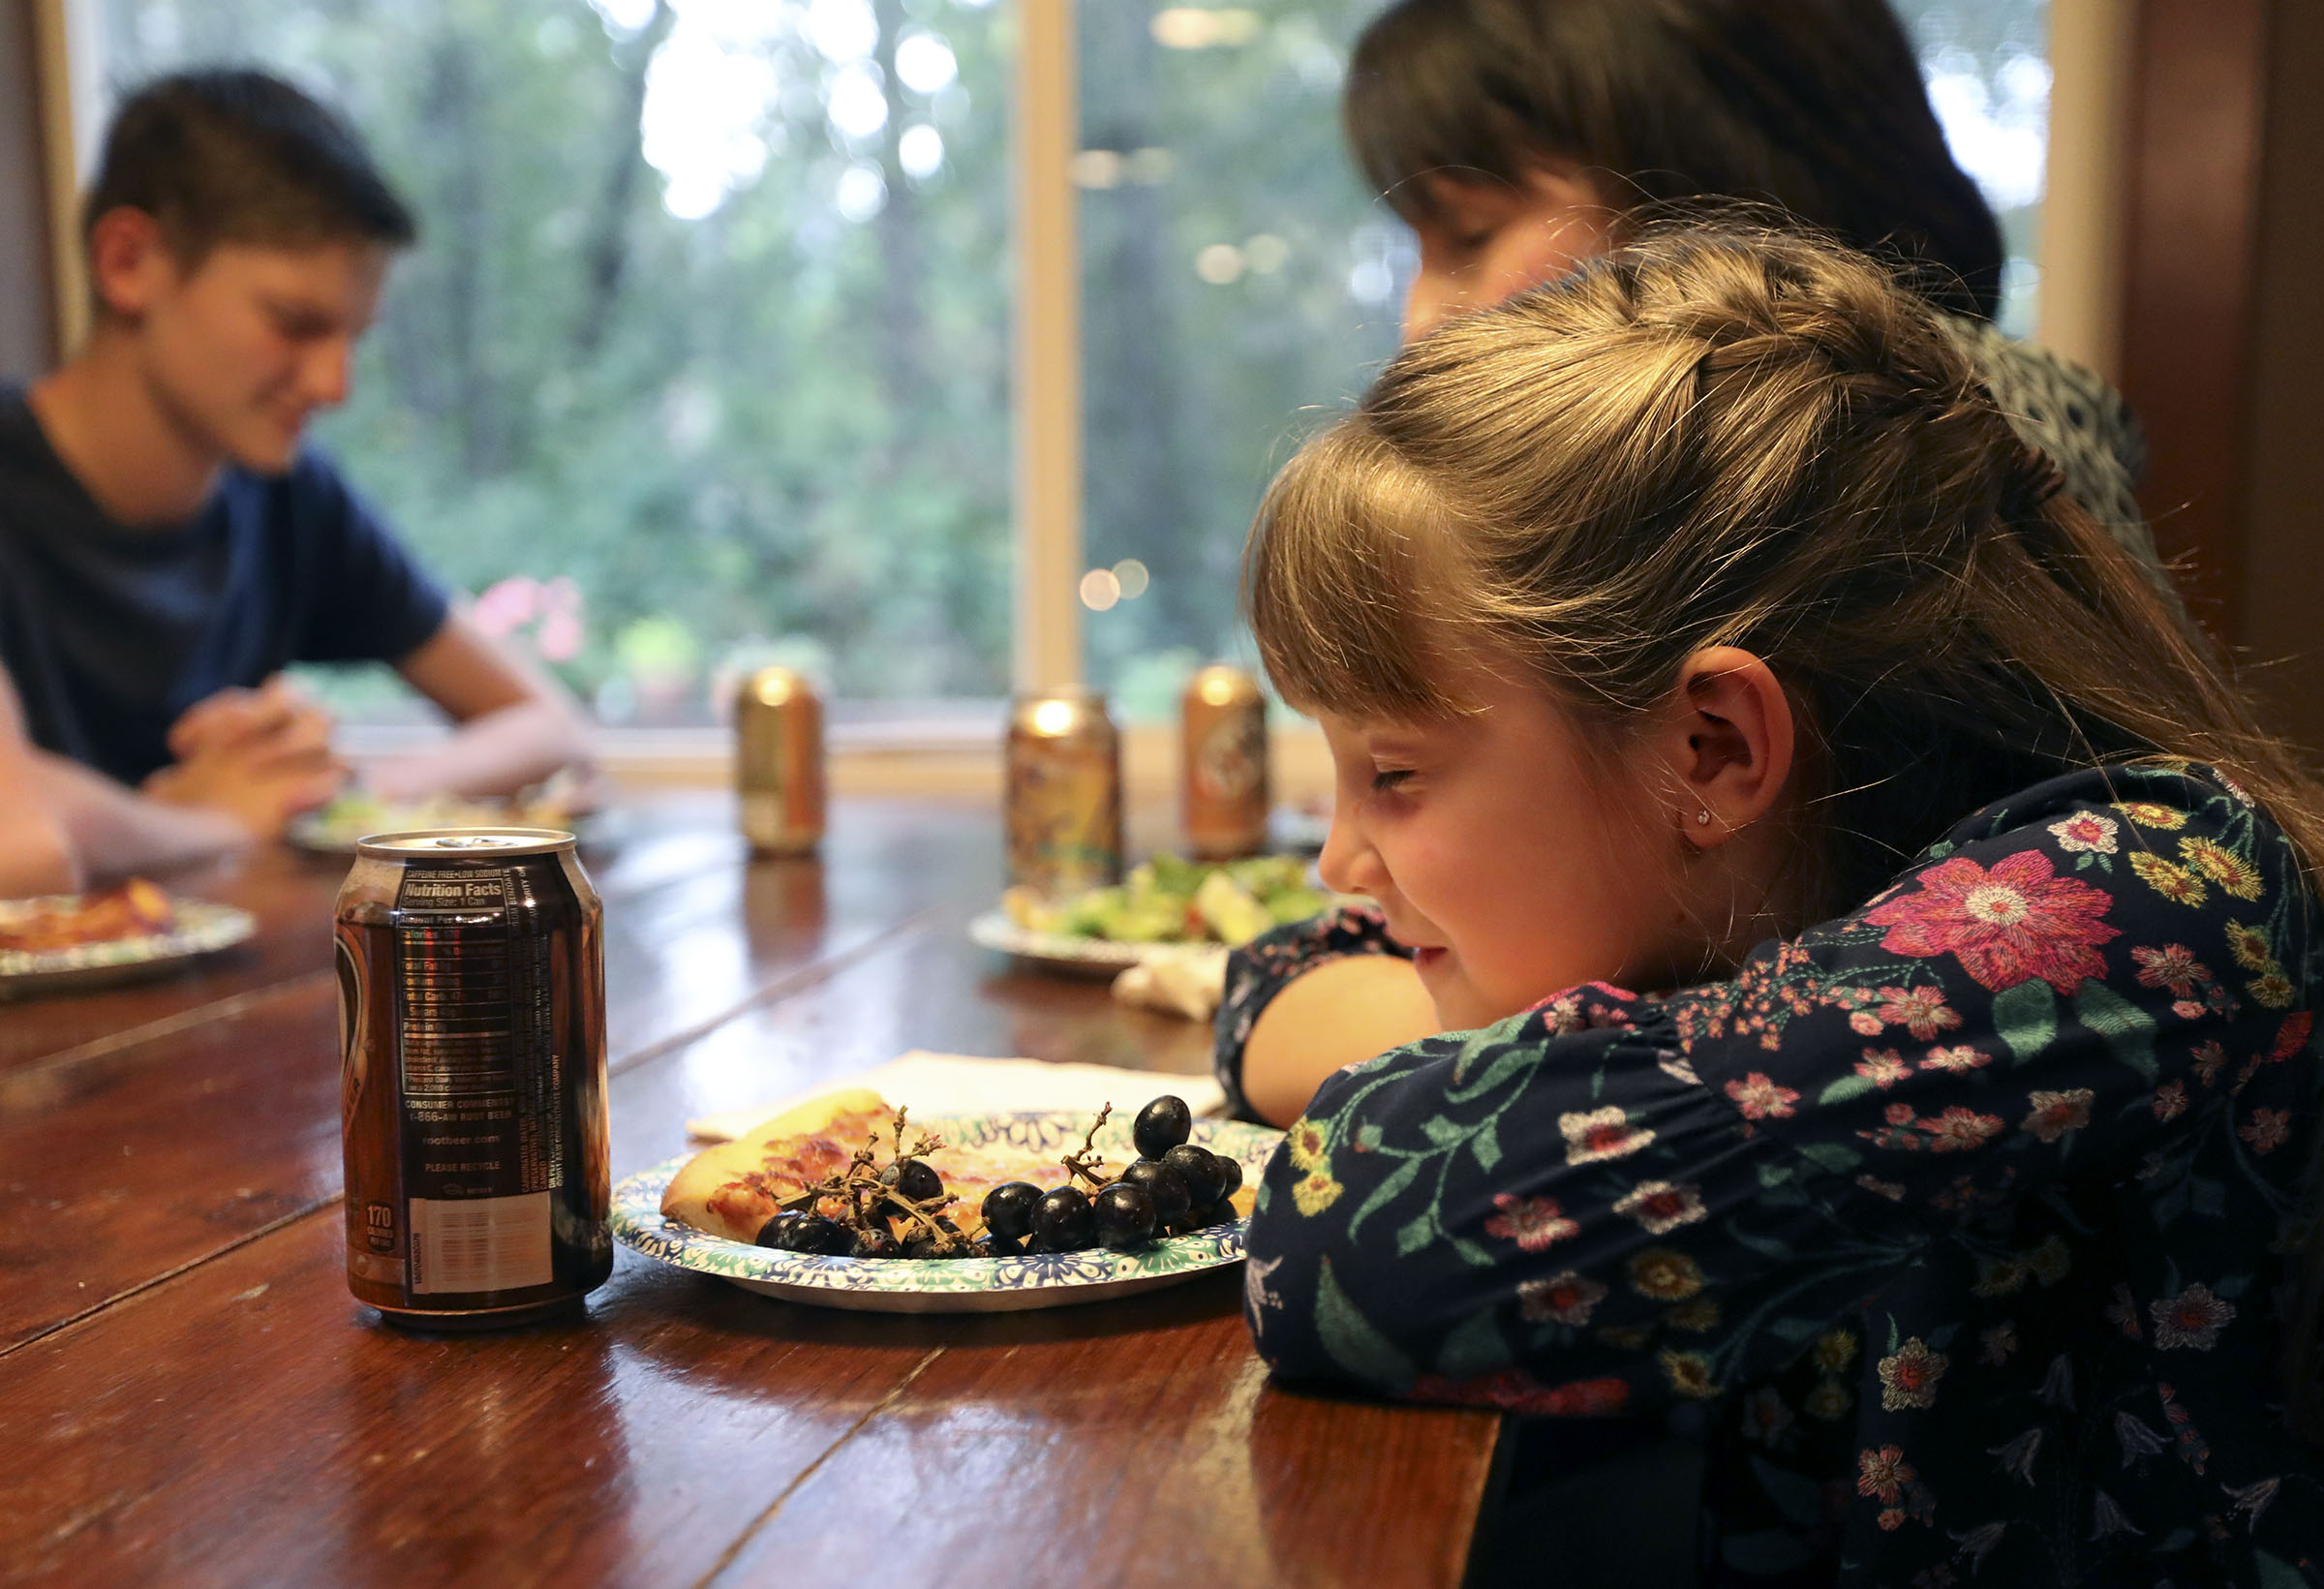 Emilia Allen prays before dinner at home in Renton, Wash., on Friday, Sept. 14, 2018.